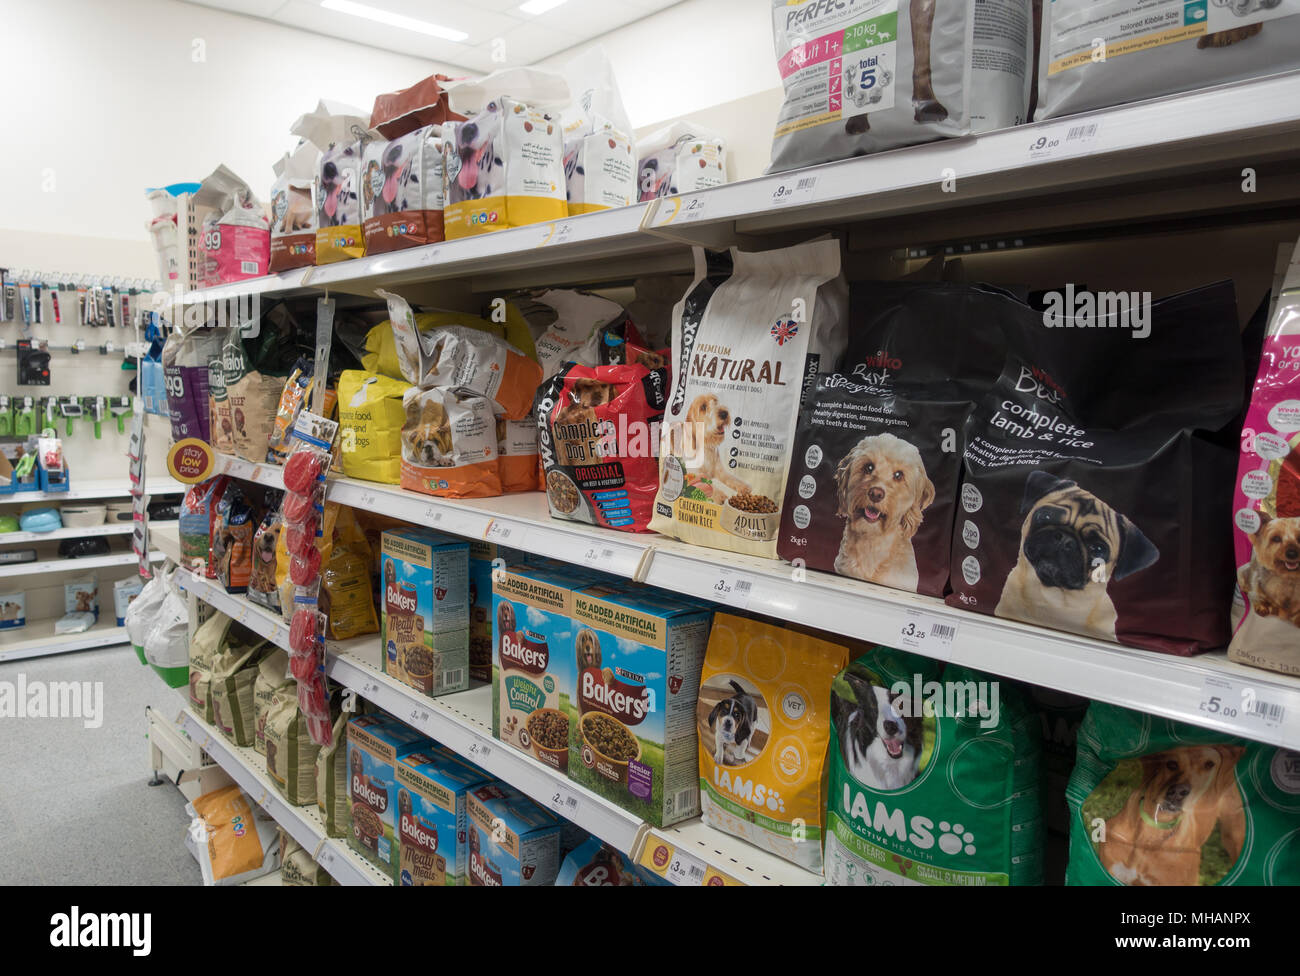 Many different brands of dog food on a shelf in a shop - Stock Image